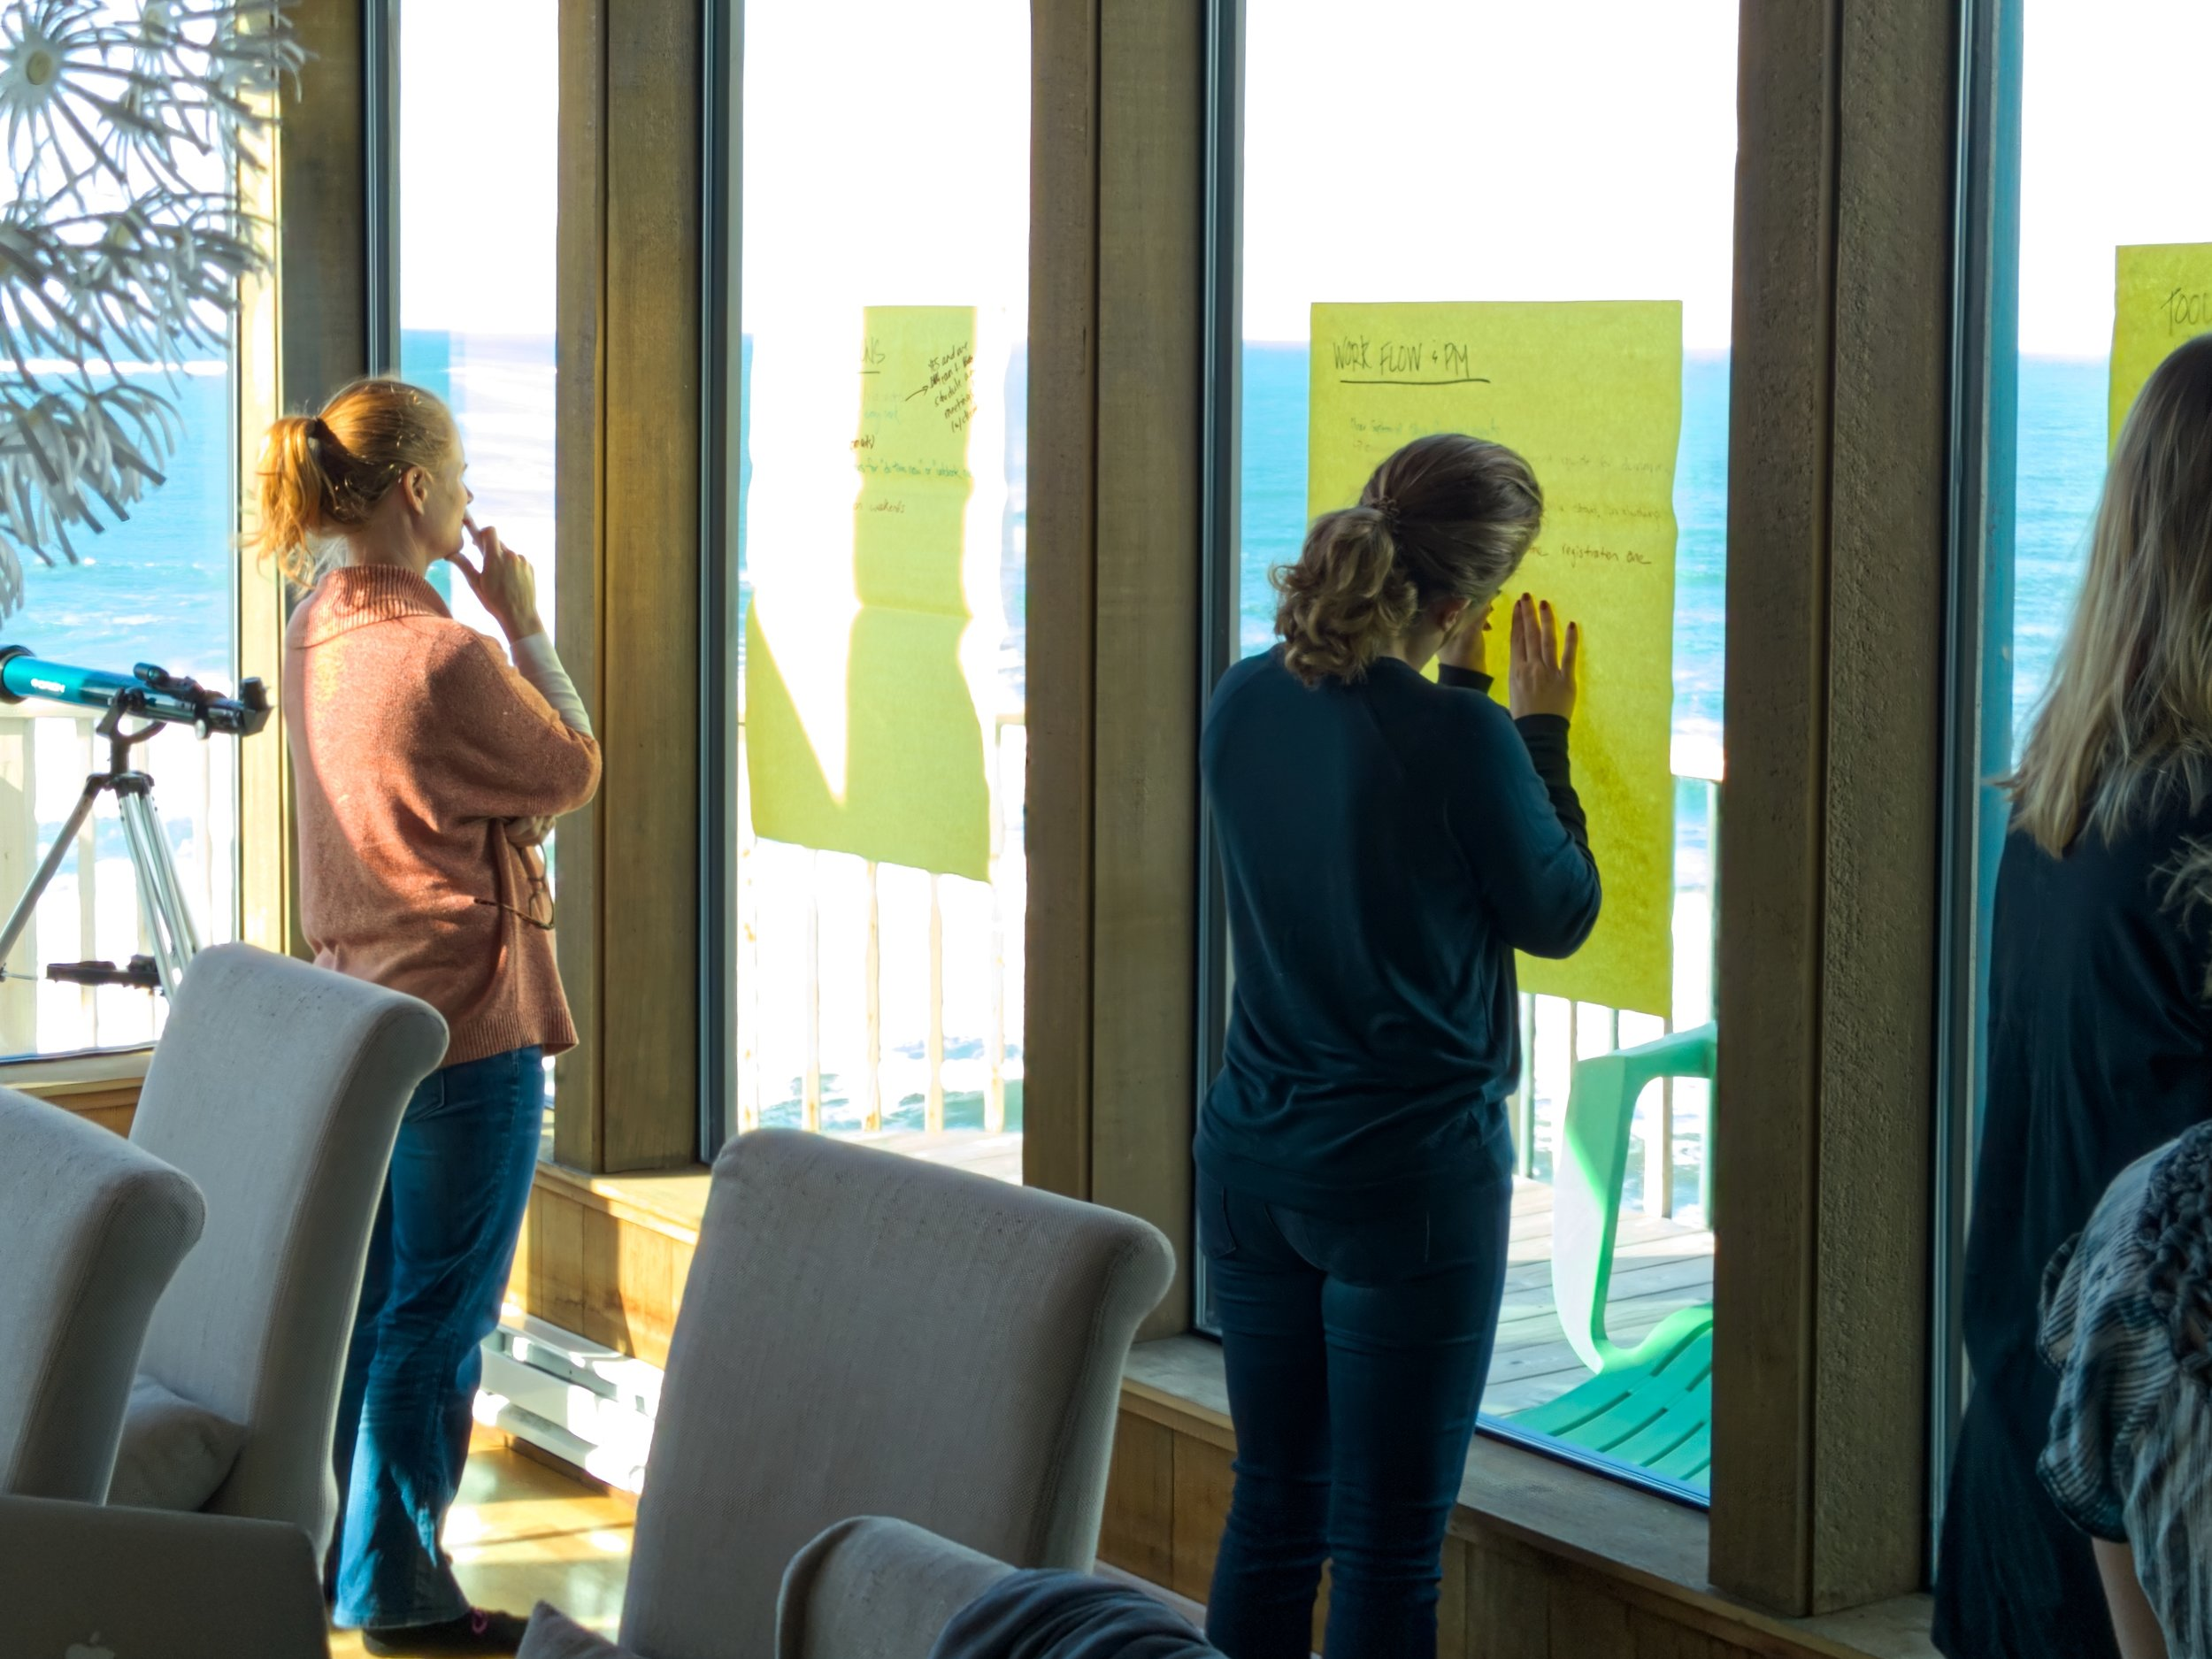 KE team members hard at work developing strategic and creative solutions for clients.